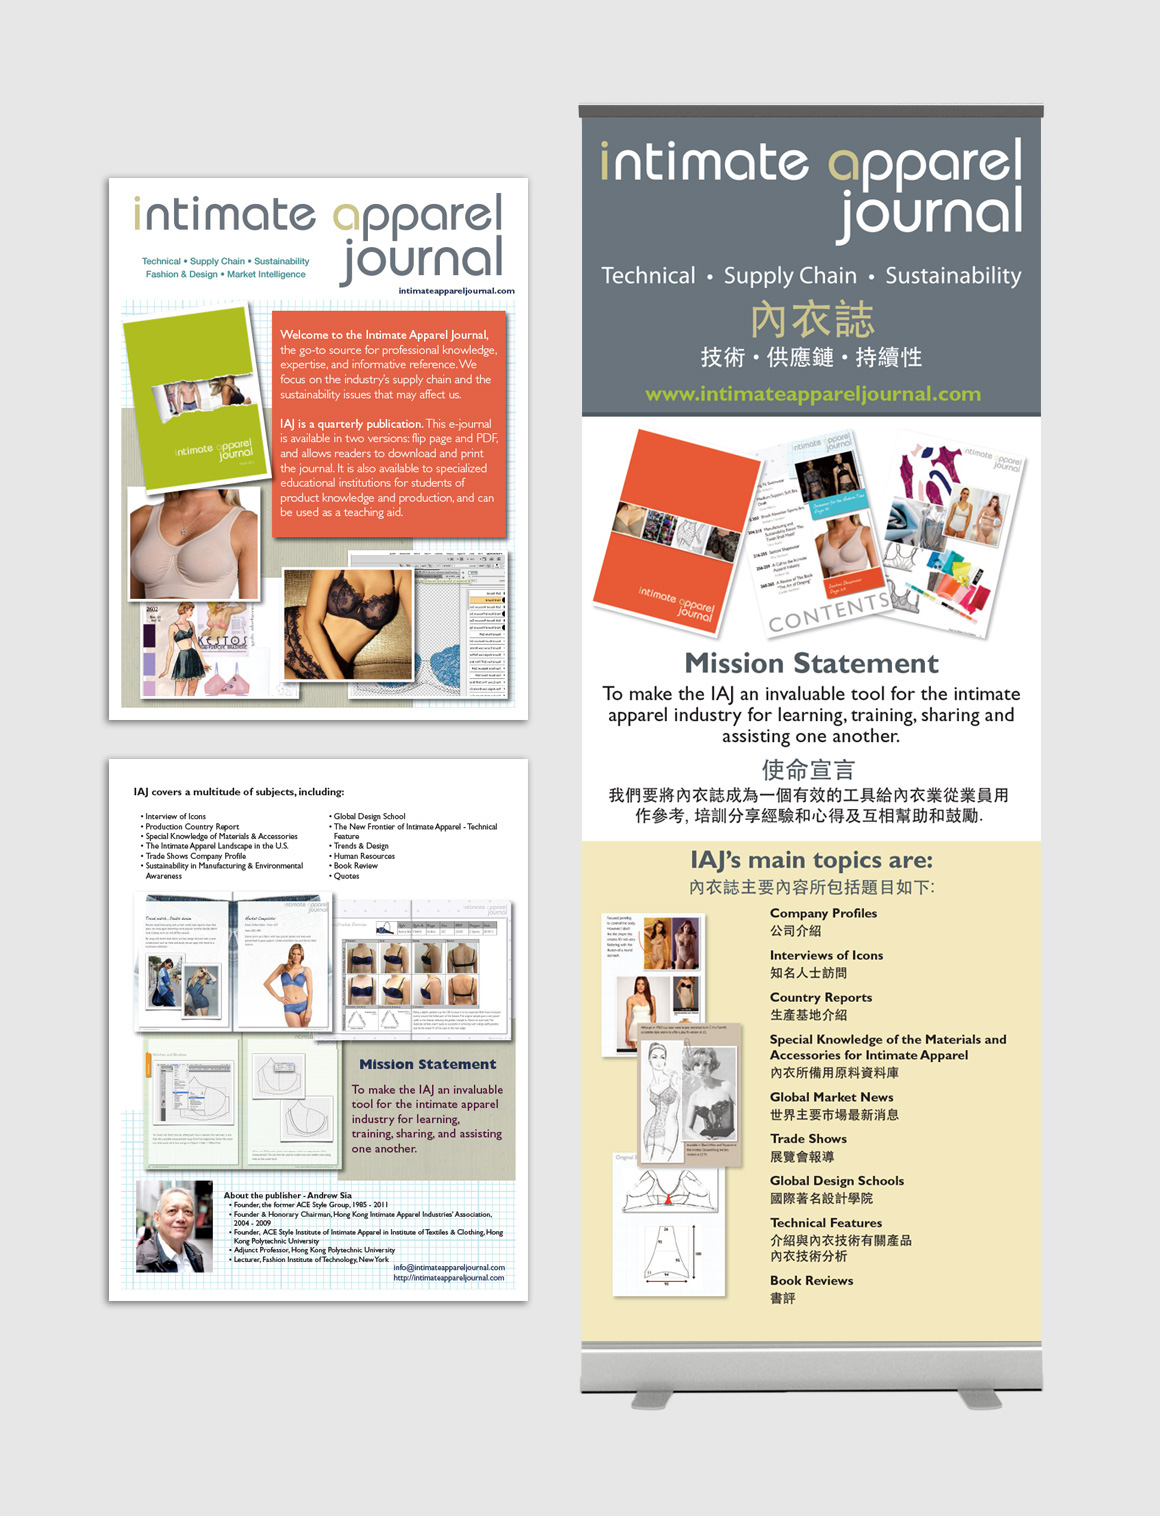 Portfolio: Intimate Apparel Journal - Print/Graphic and Popup Stand Design